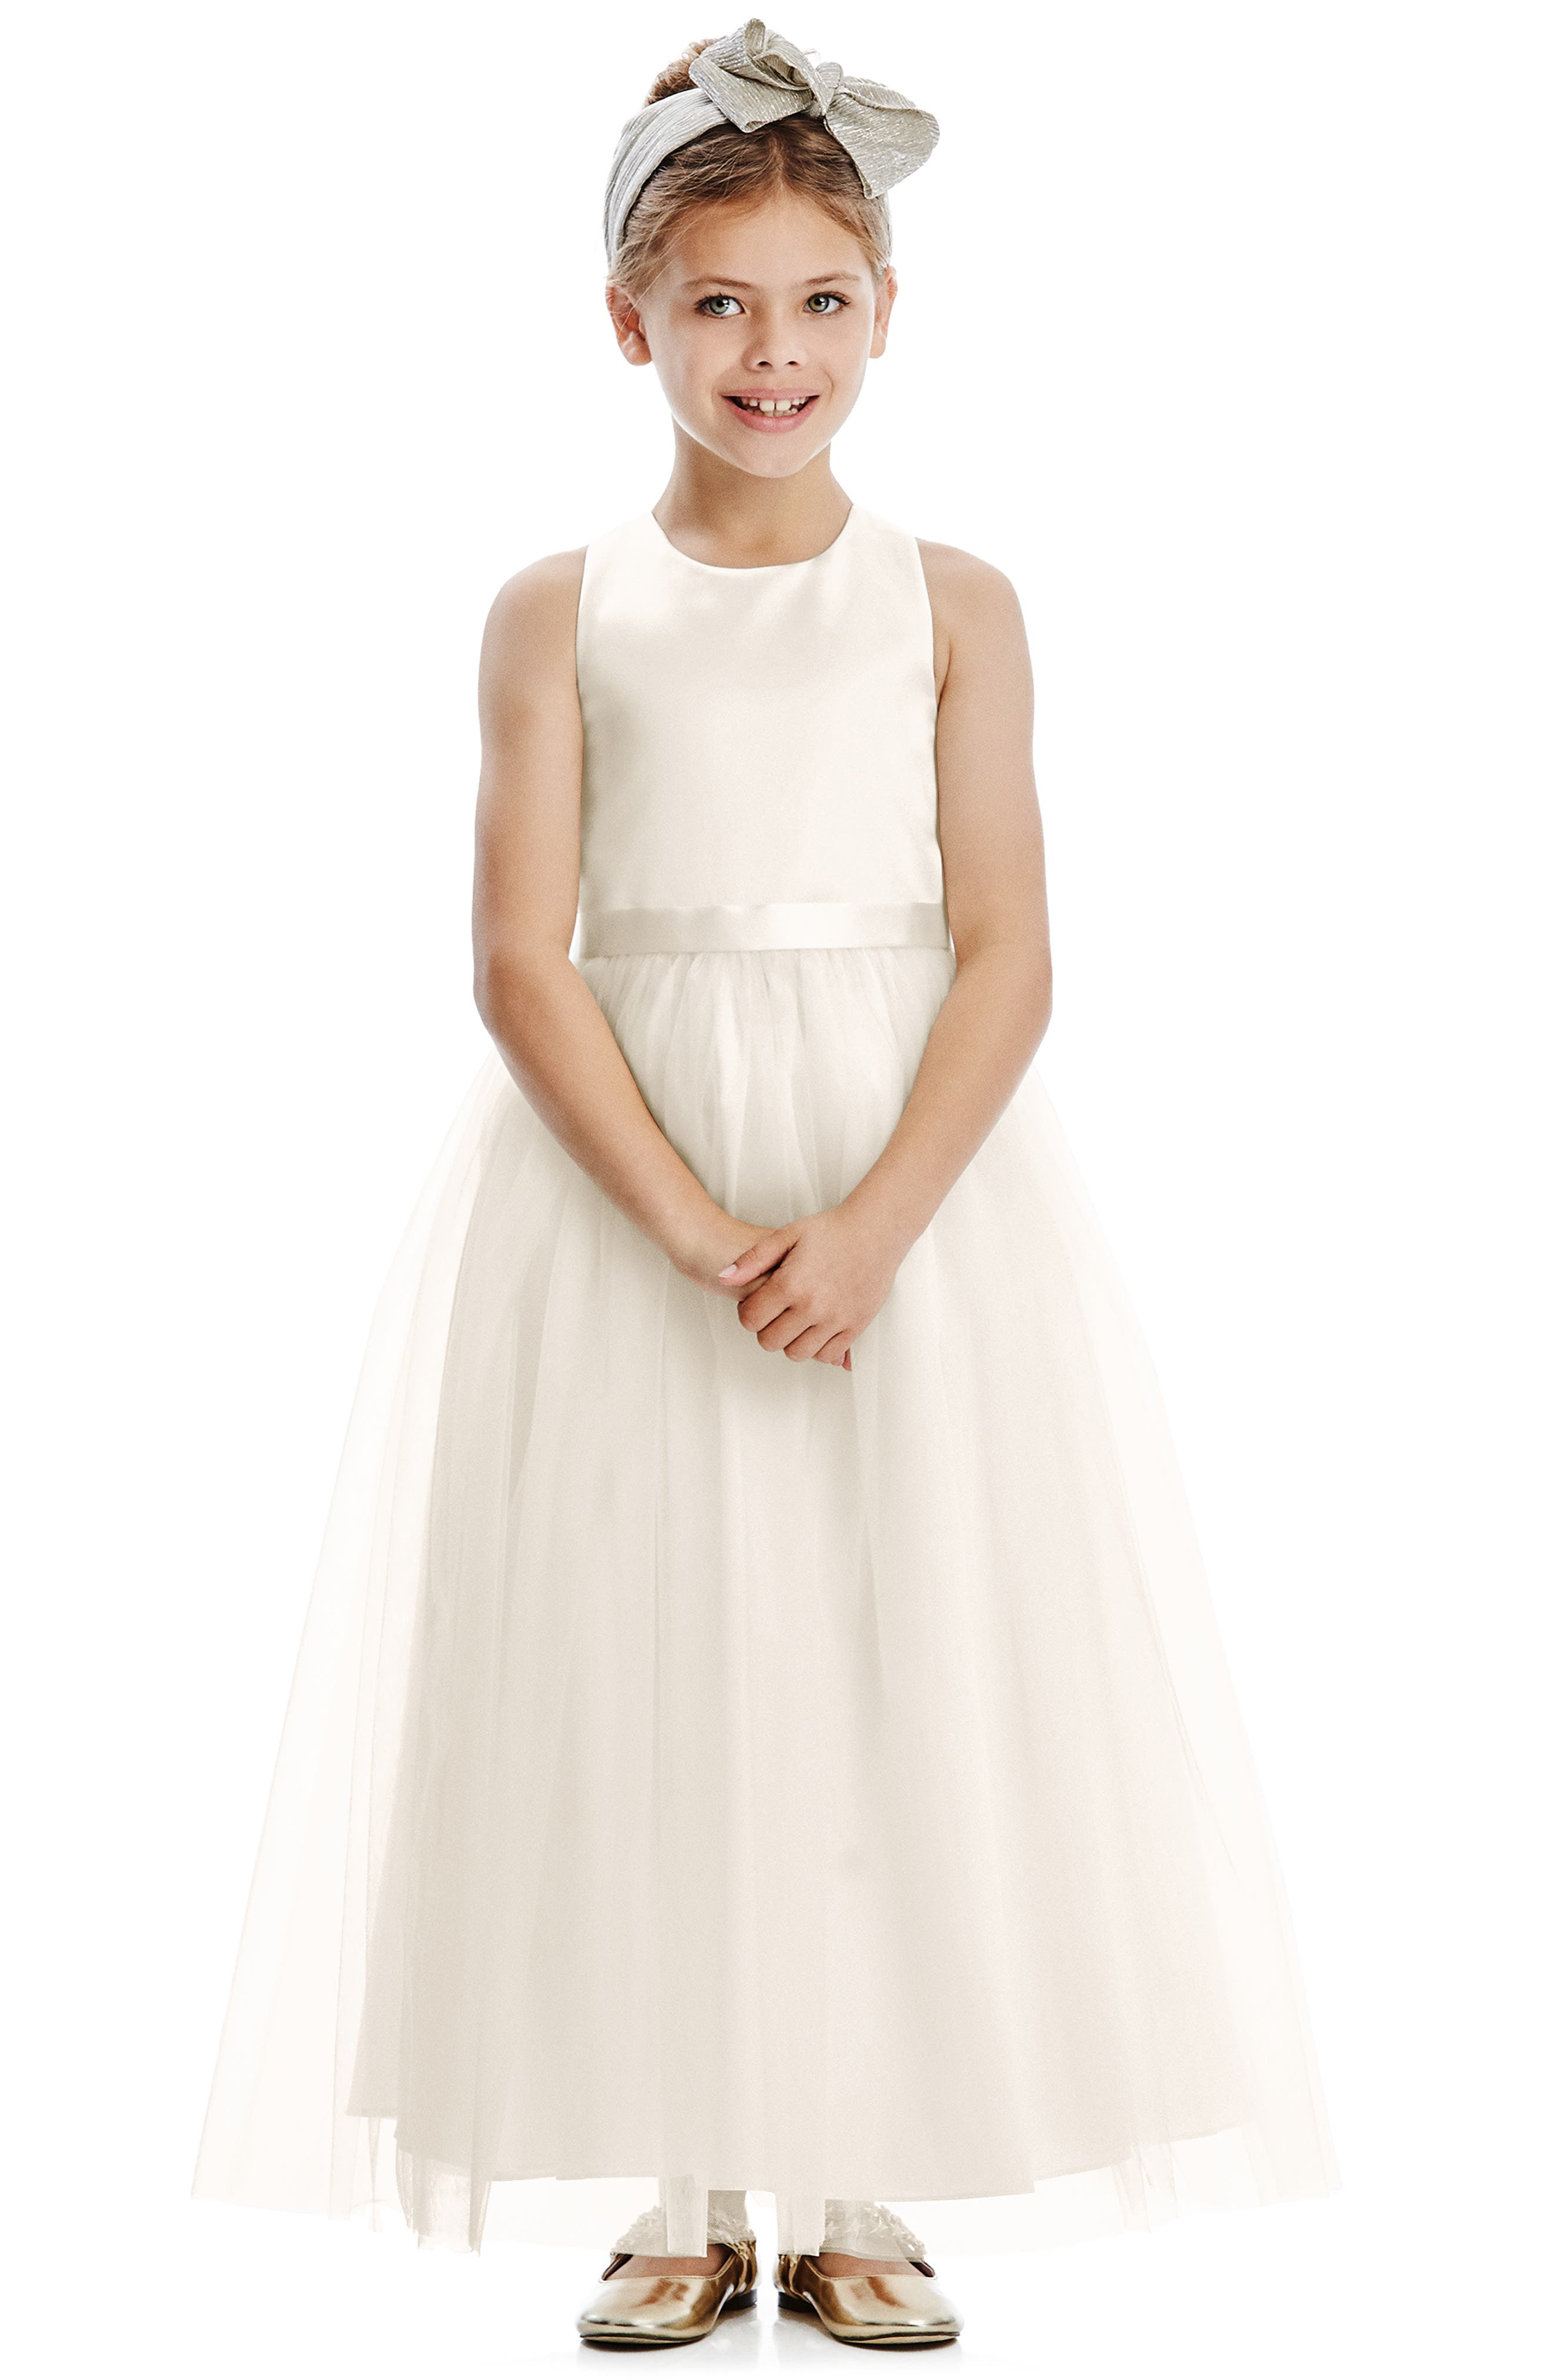 A gauzy tulle skirt provides a graceful finish for a sweet flower girl dress that\\\'s sure to make the occasion extra special. Style Name: Dessy Collection Tulle Skirt Flower Girl Dress (Toddler, Little Girl & Big Girl). Style Number: 6071892. Available in stores.